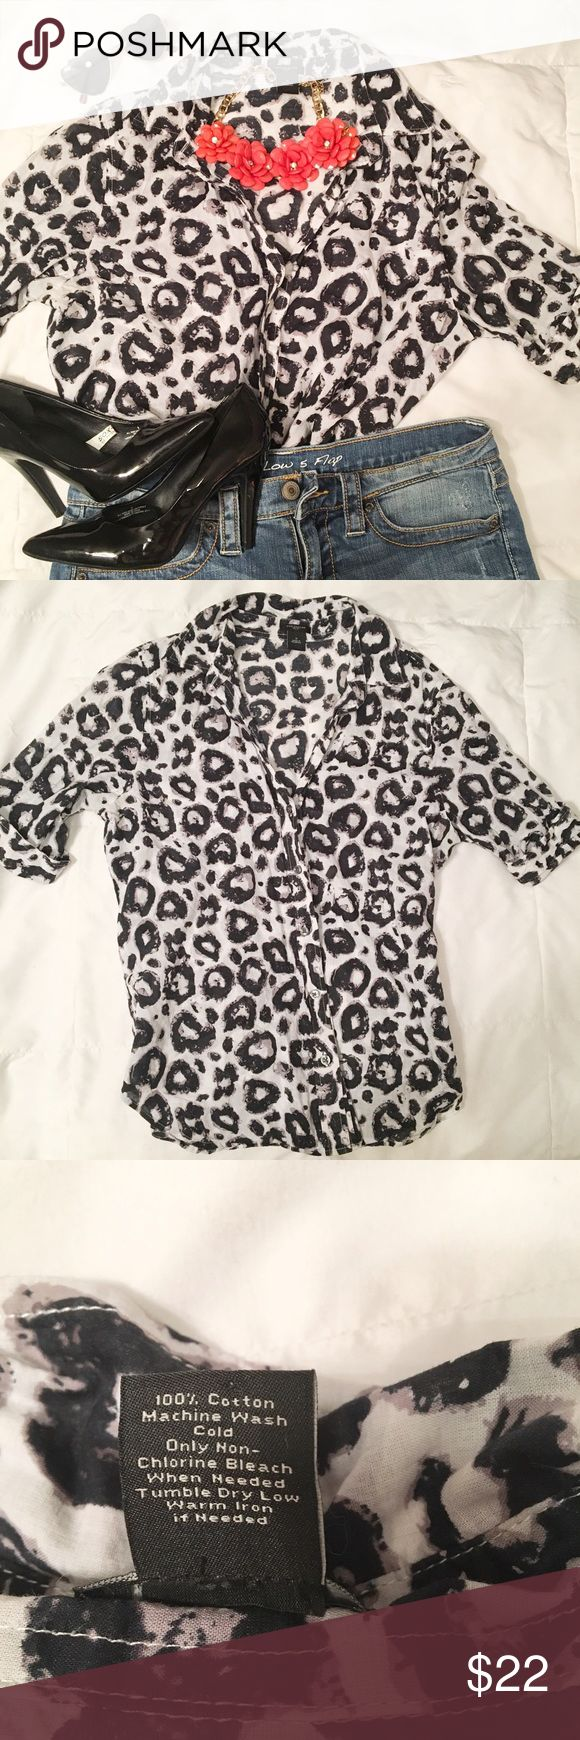 Ann Taylor Black & White Leopard Top Ann Taylor Black & White Leopard Top, 100% Cotton! Collar and button up. Great for the office or dressed up for a night out, very versatile! 💄🤓👠👠 Lightweight, comfy 🌷 Ann Taylor Tops Blouses